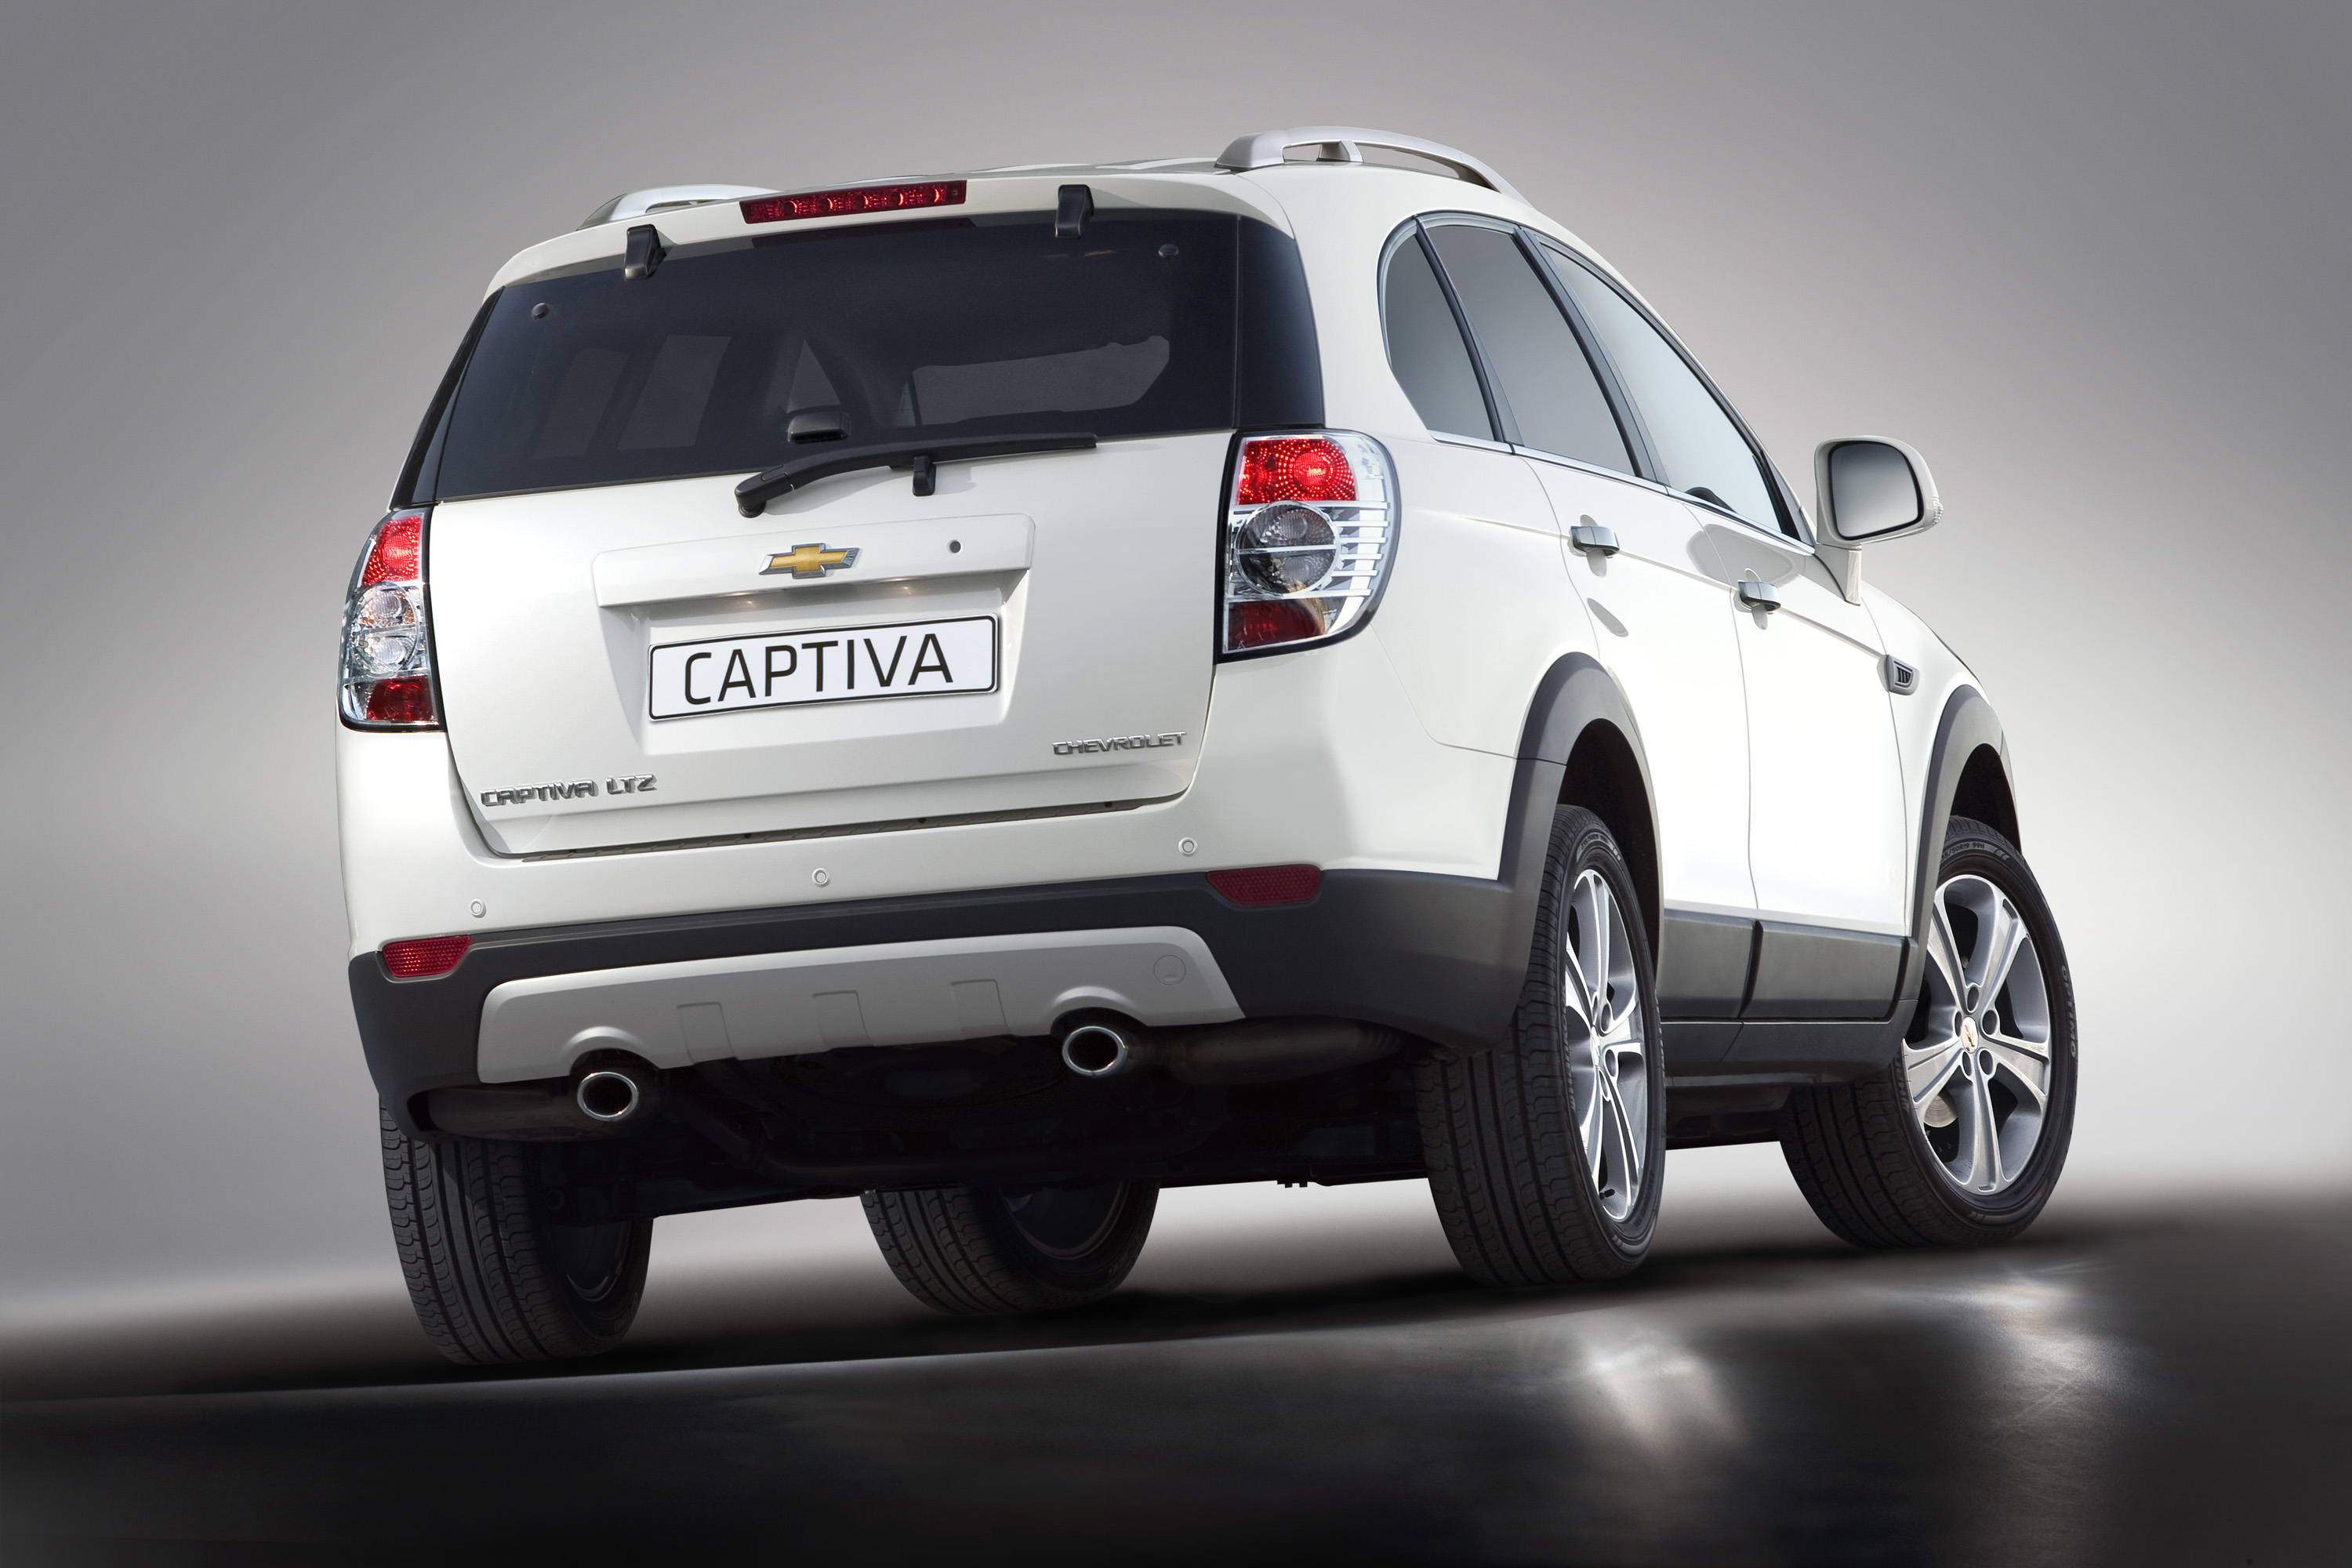 2011 Chevrolet Captiva The Better Suv